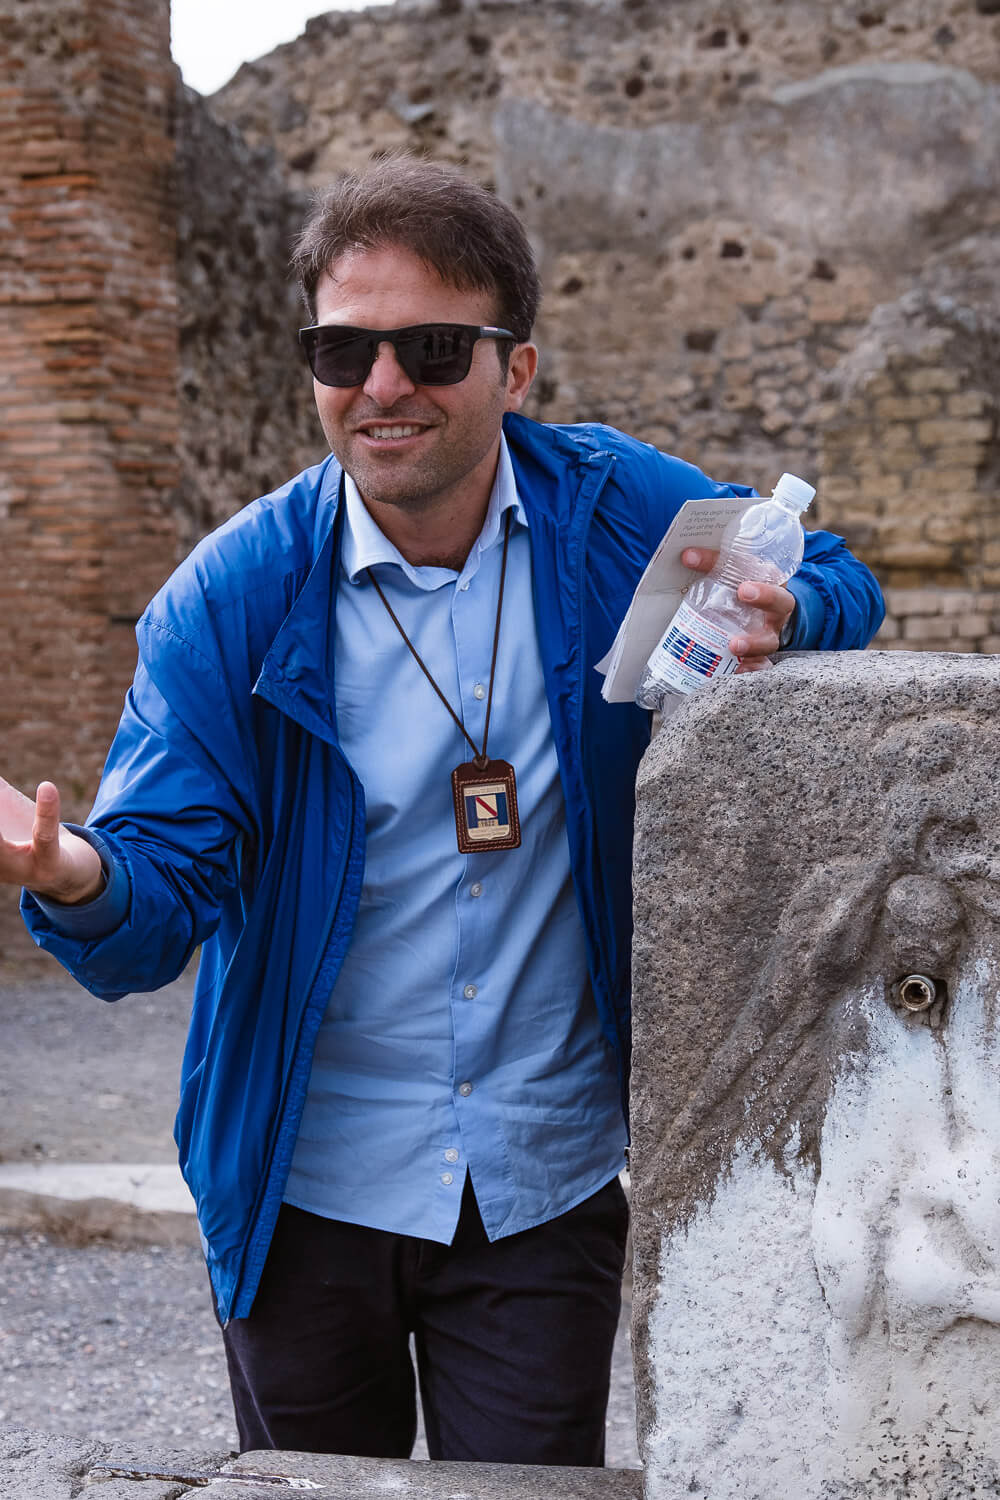 """Private tour guide of Pompeii, Paolo. Travel photography and guide by © Natasha Lequepeys for """"And Then I Met Yoko"""". #pompeii #italy #fujifilm #travelphotography"""